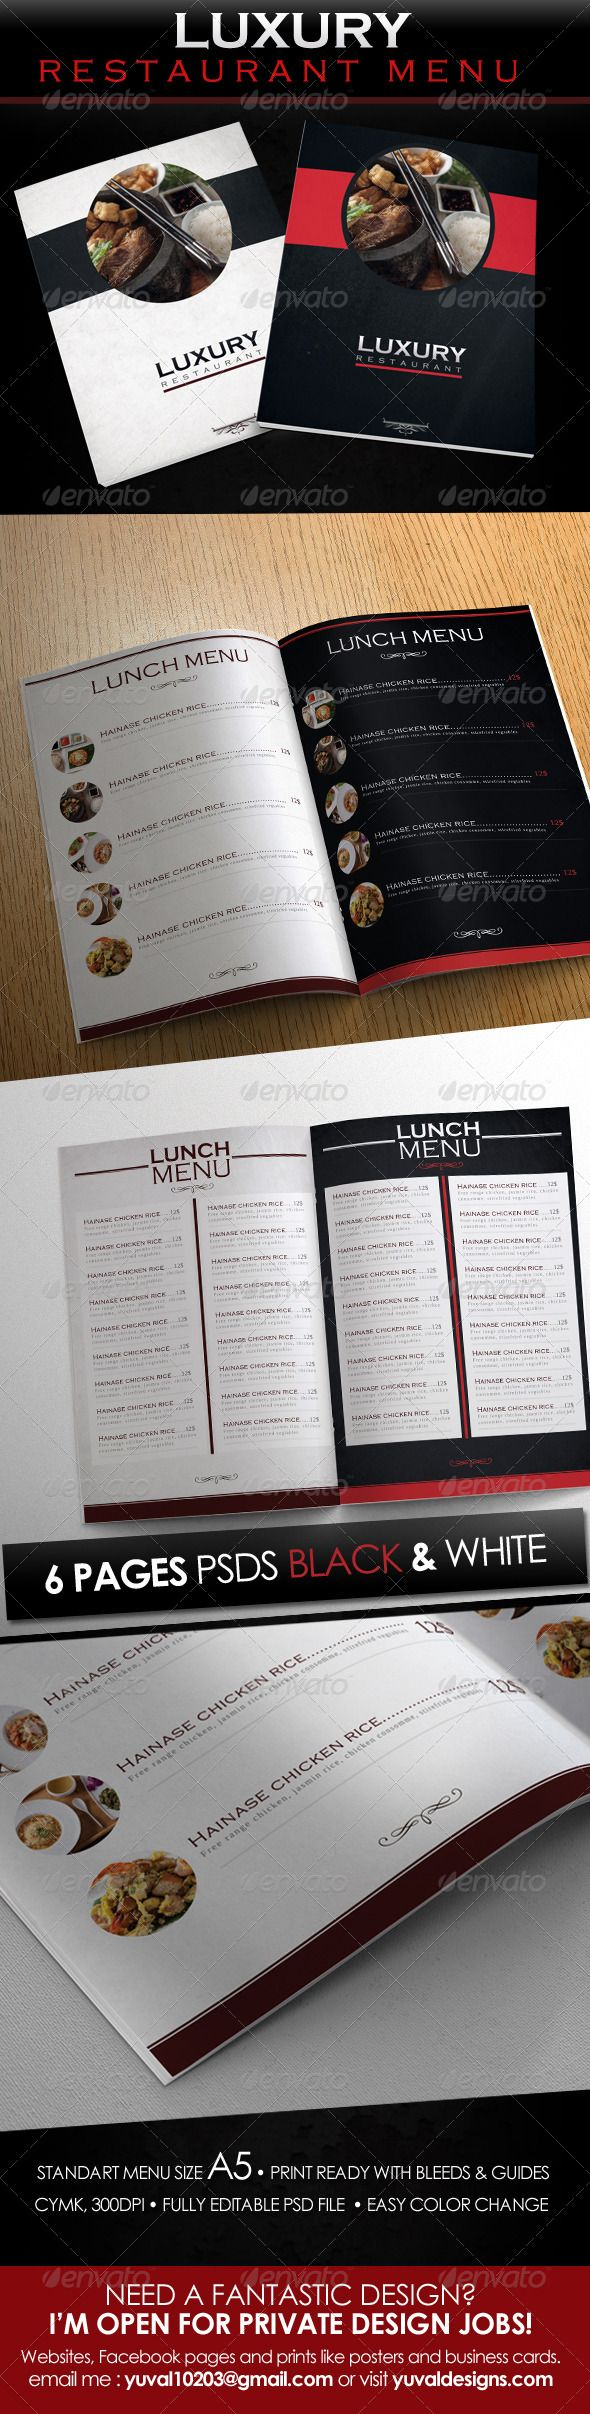 fancy restaurant fancy restaurant menu design